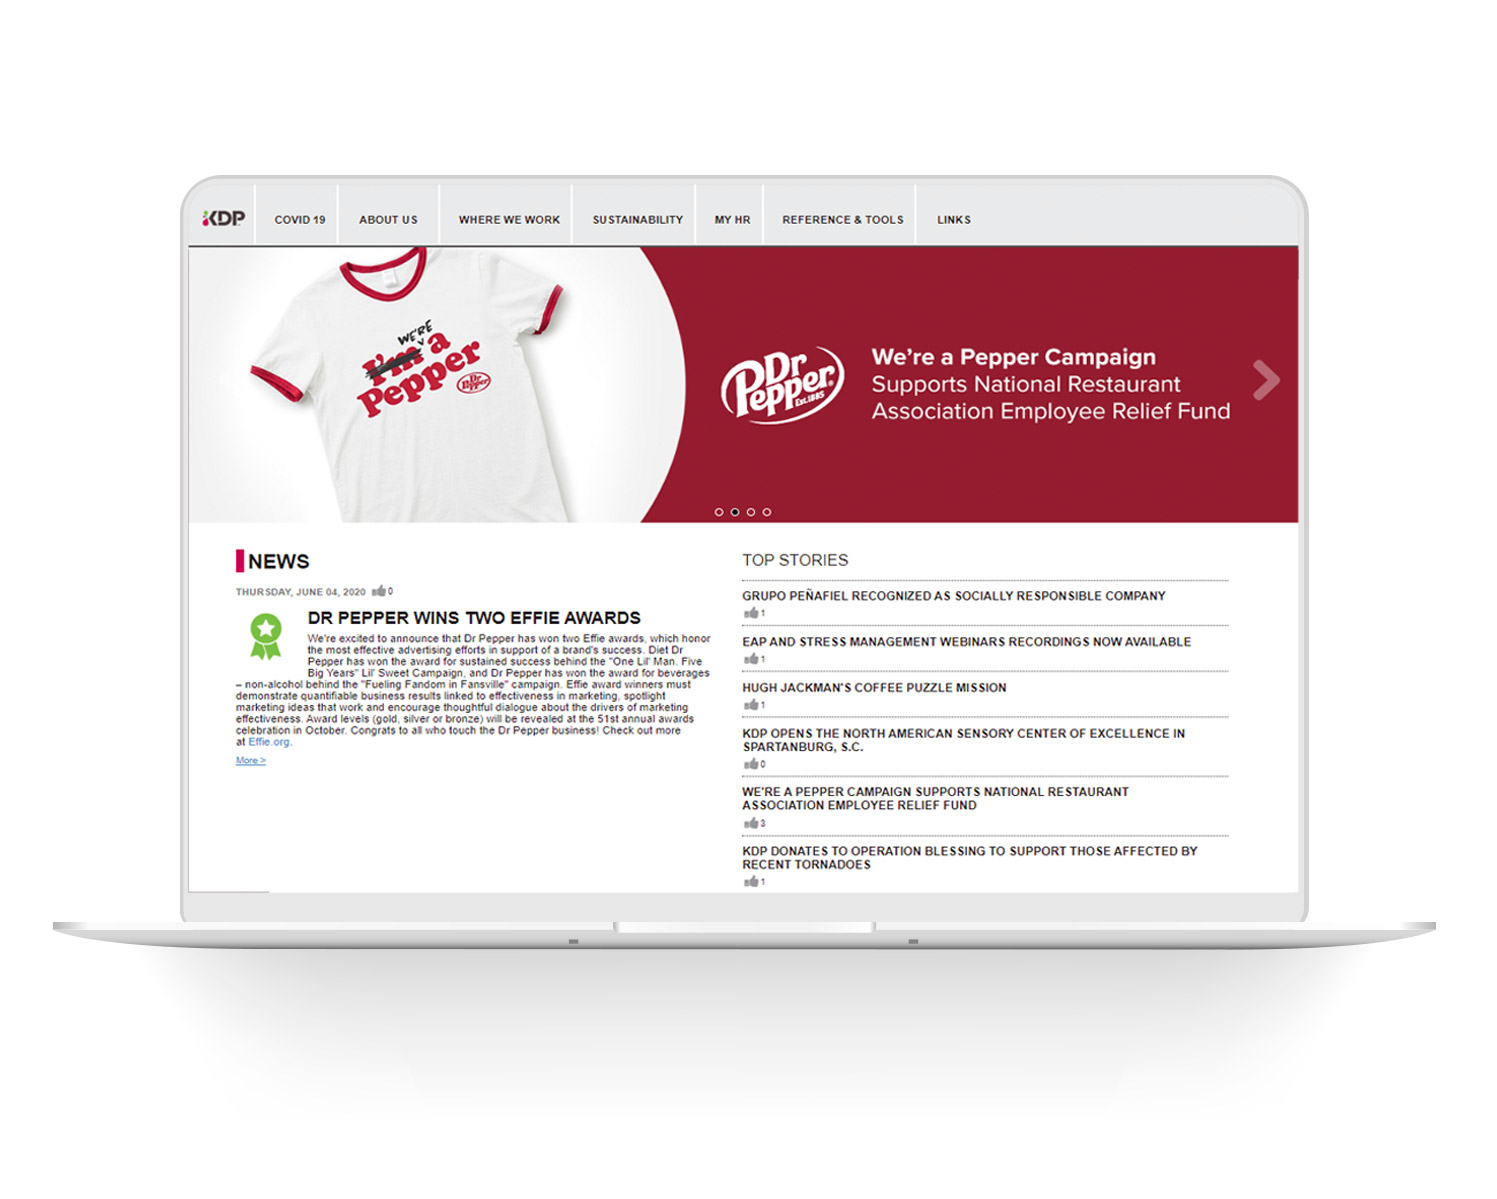 Keurig-DrPepper-Intranet